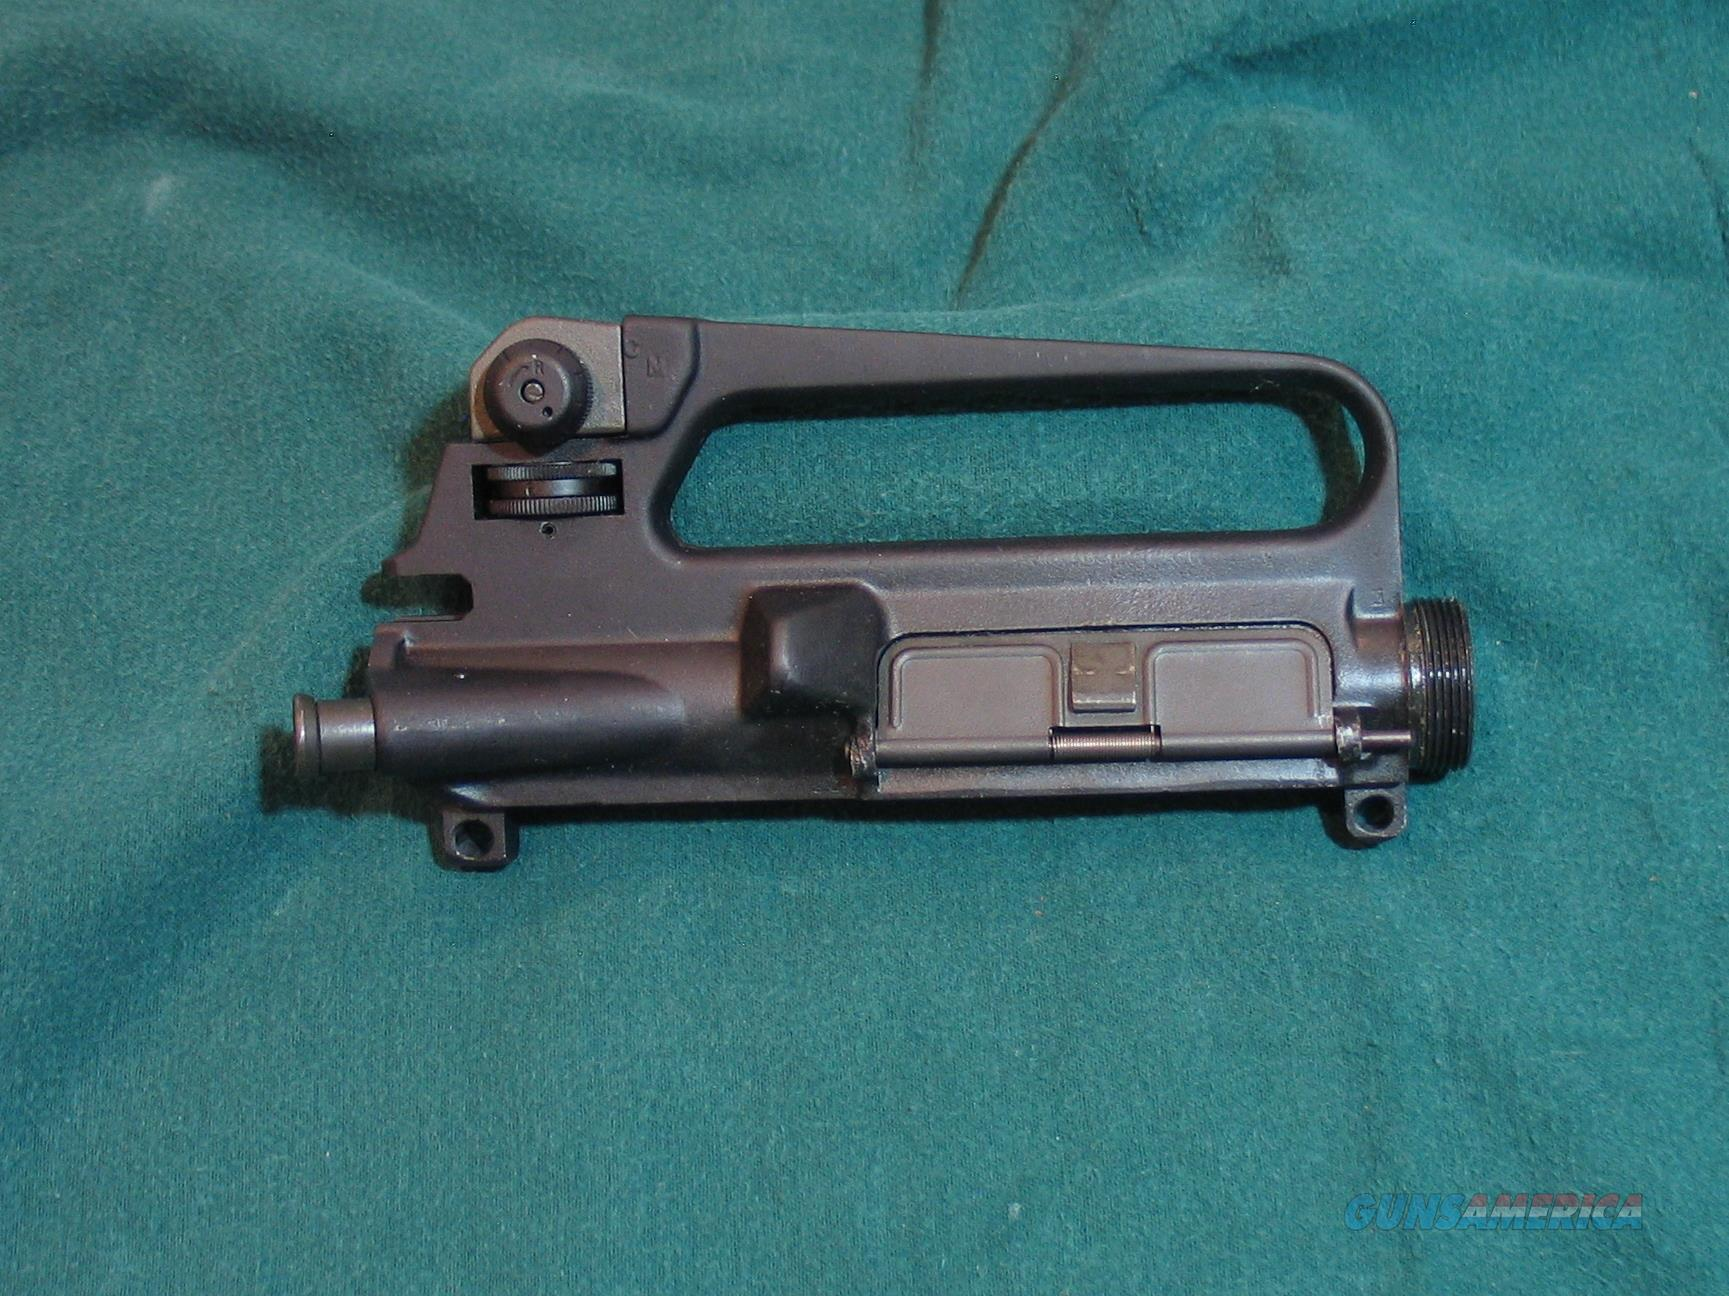 COLT M16A2 UPPER RECEIVER , FORGED BY MARTIN MARIETTA